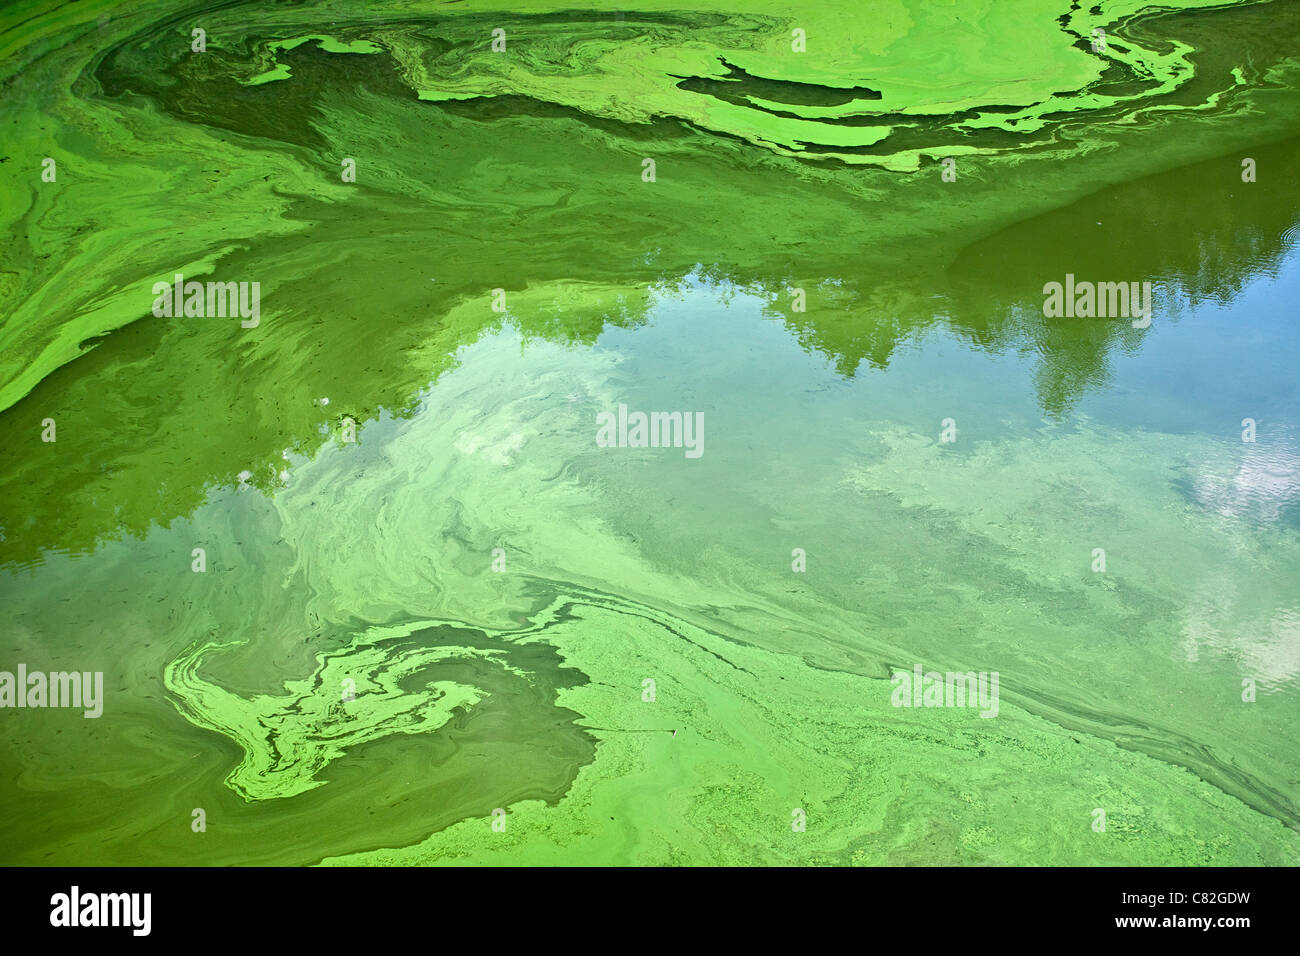 Cyanobacteria or 'blue-green' algae, which develop at the surface of a slow flow river, in the Summer (Puy - Stock Image